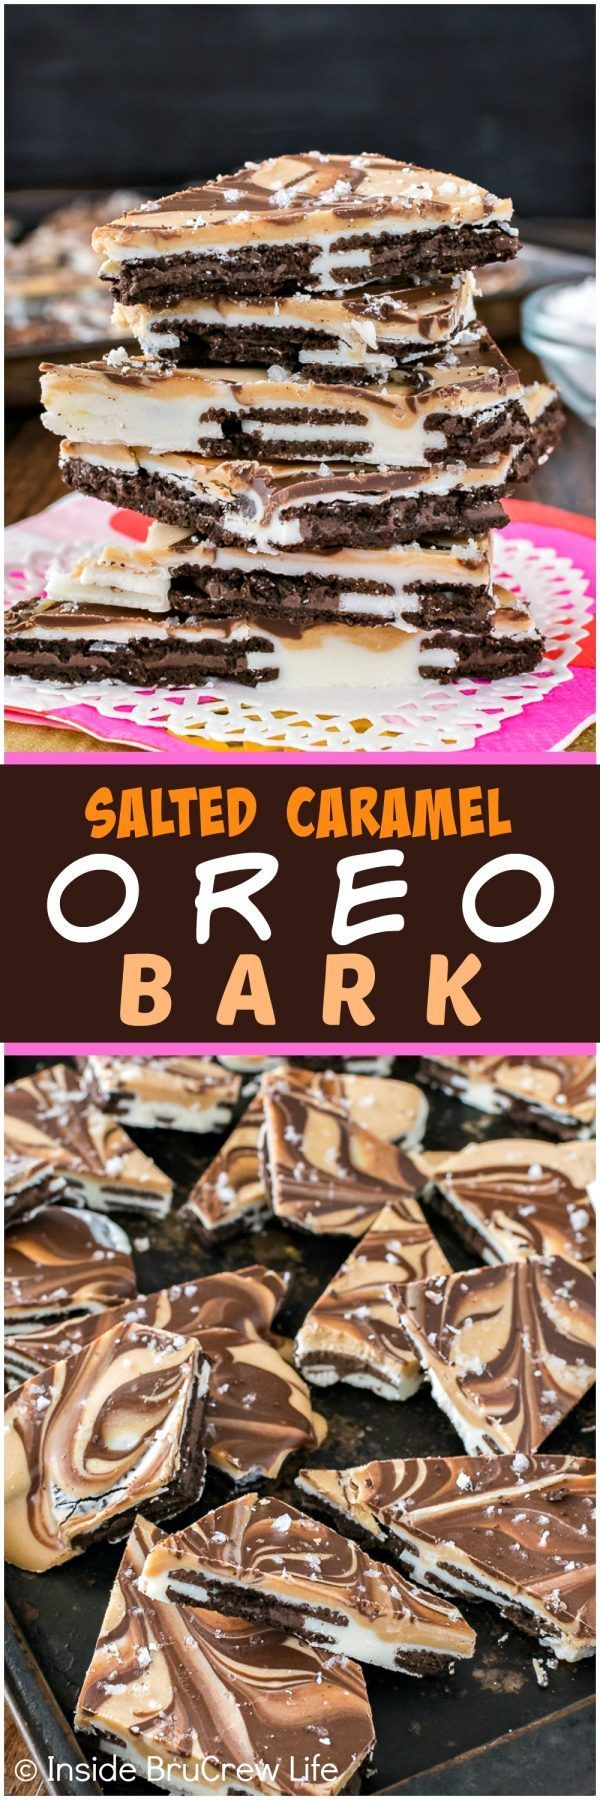 Salted Caramel Oreo Bark - swirls of chocolate and caramel on top of cookies makes this no bake candy disappear in a hurry.  Easy recipe when you need a sweet treat in a hurry! (Chocolate Desserts Easy)